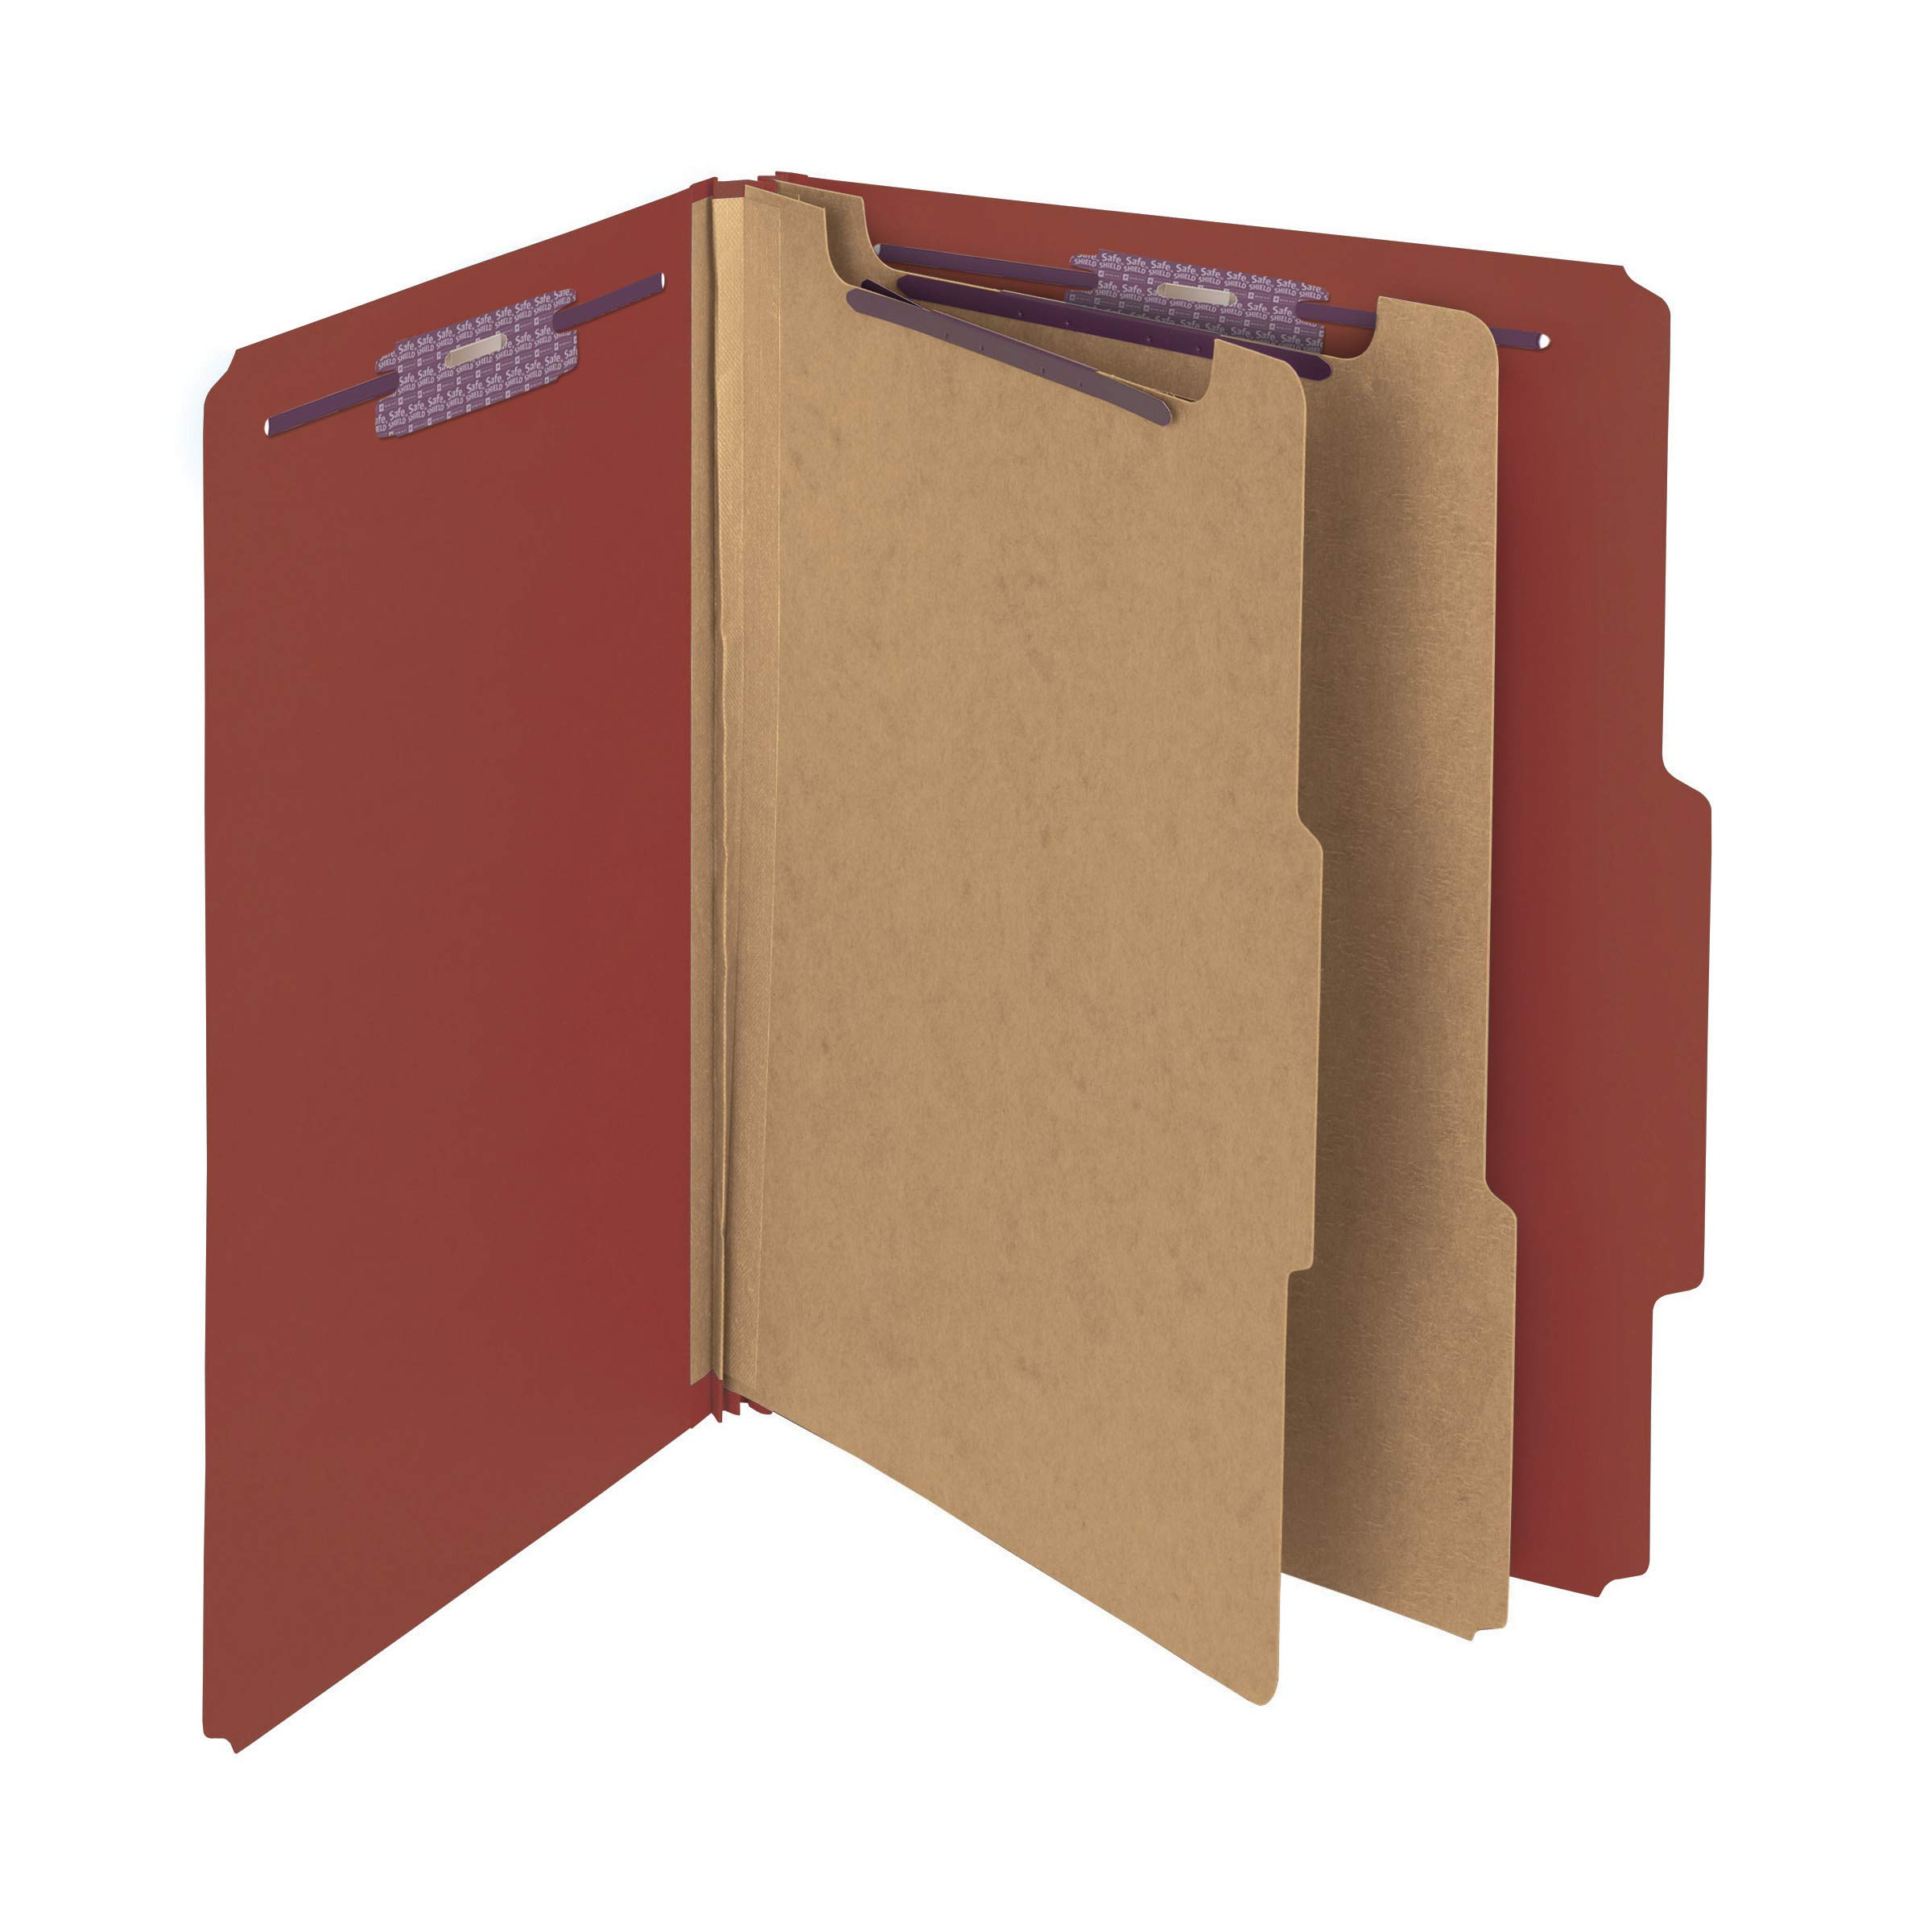 Smead Pressboard Classification File Folder with SafeSHIELD Fasteners, 2 Dividers, 2'' Expansion, Letter Size, Red, 10 per Box (14073) by Smead